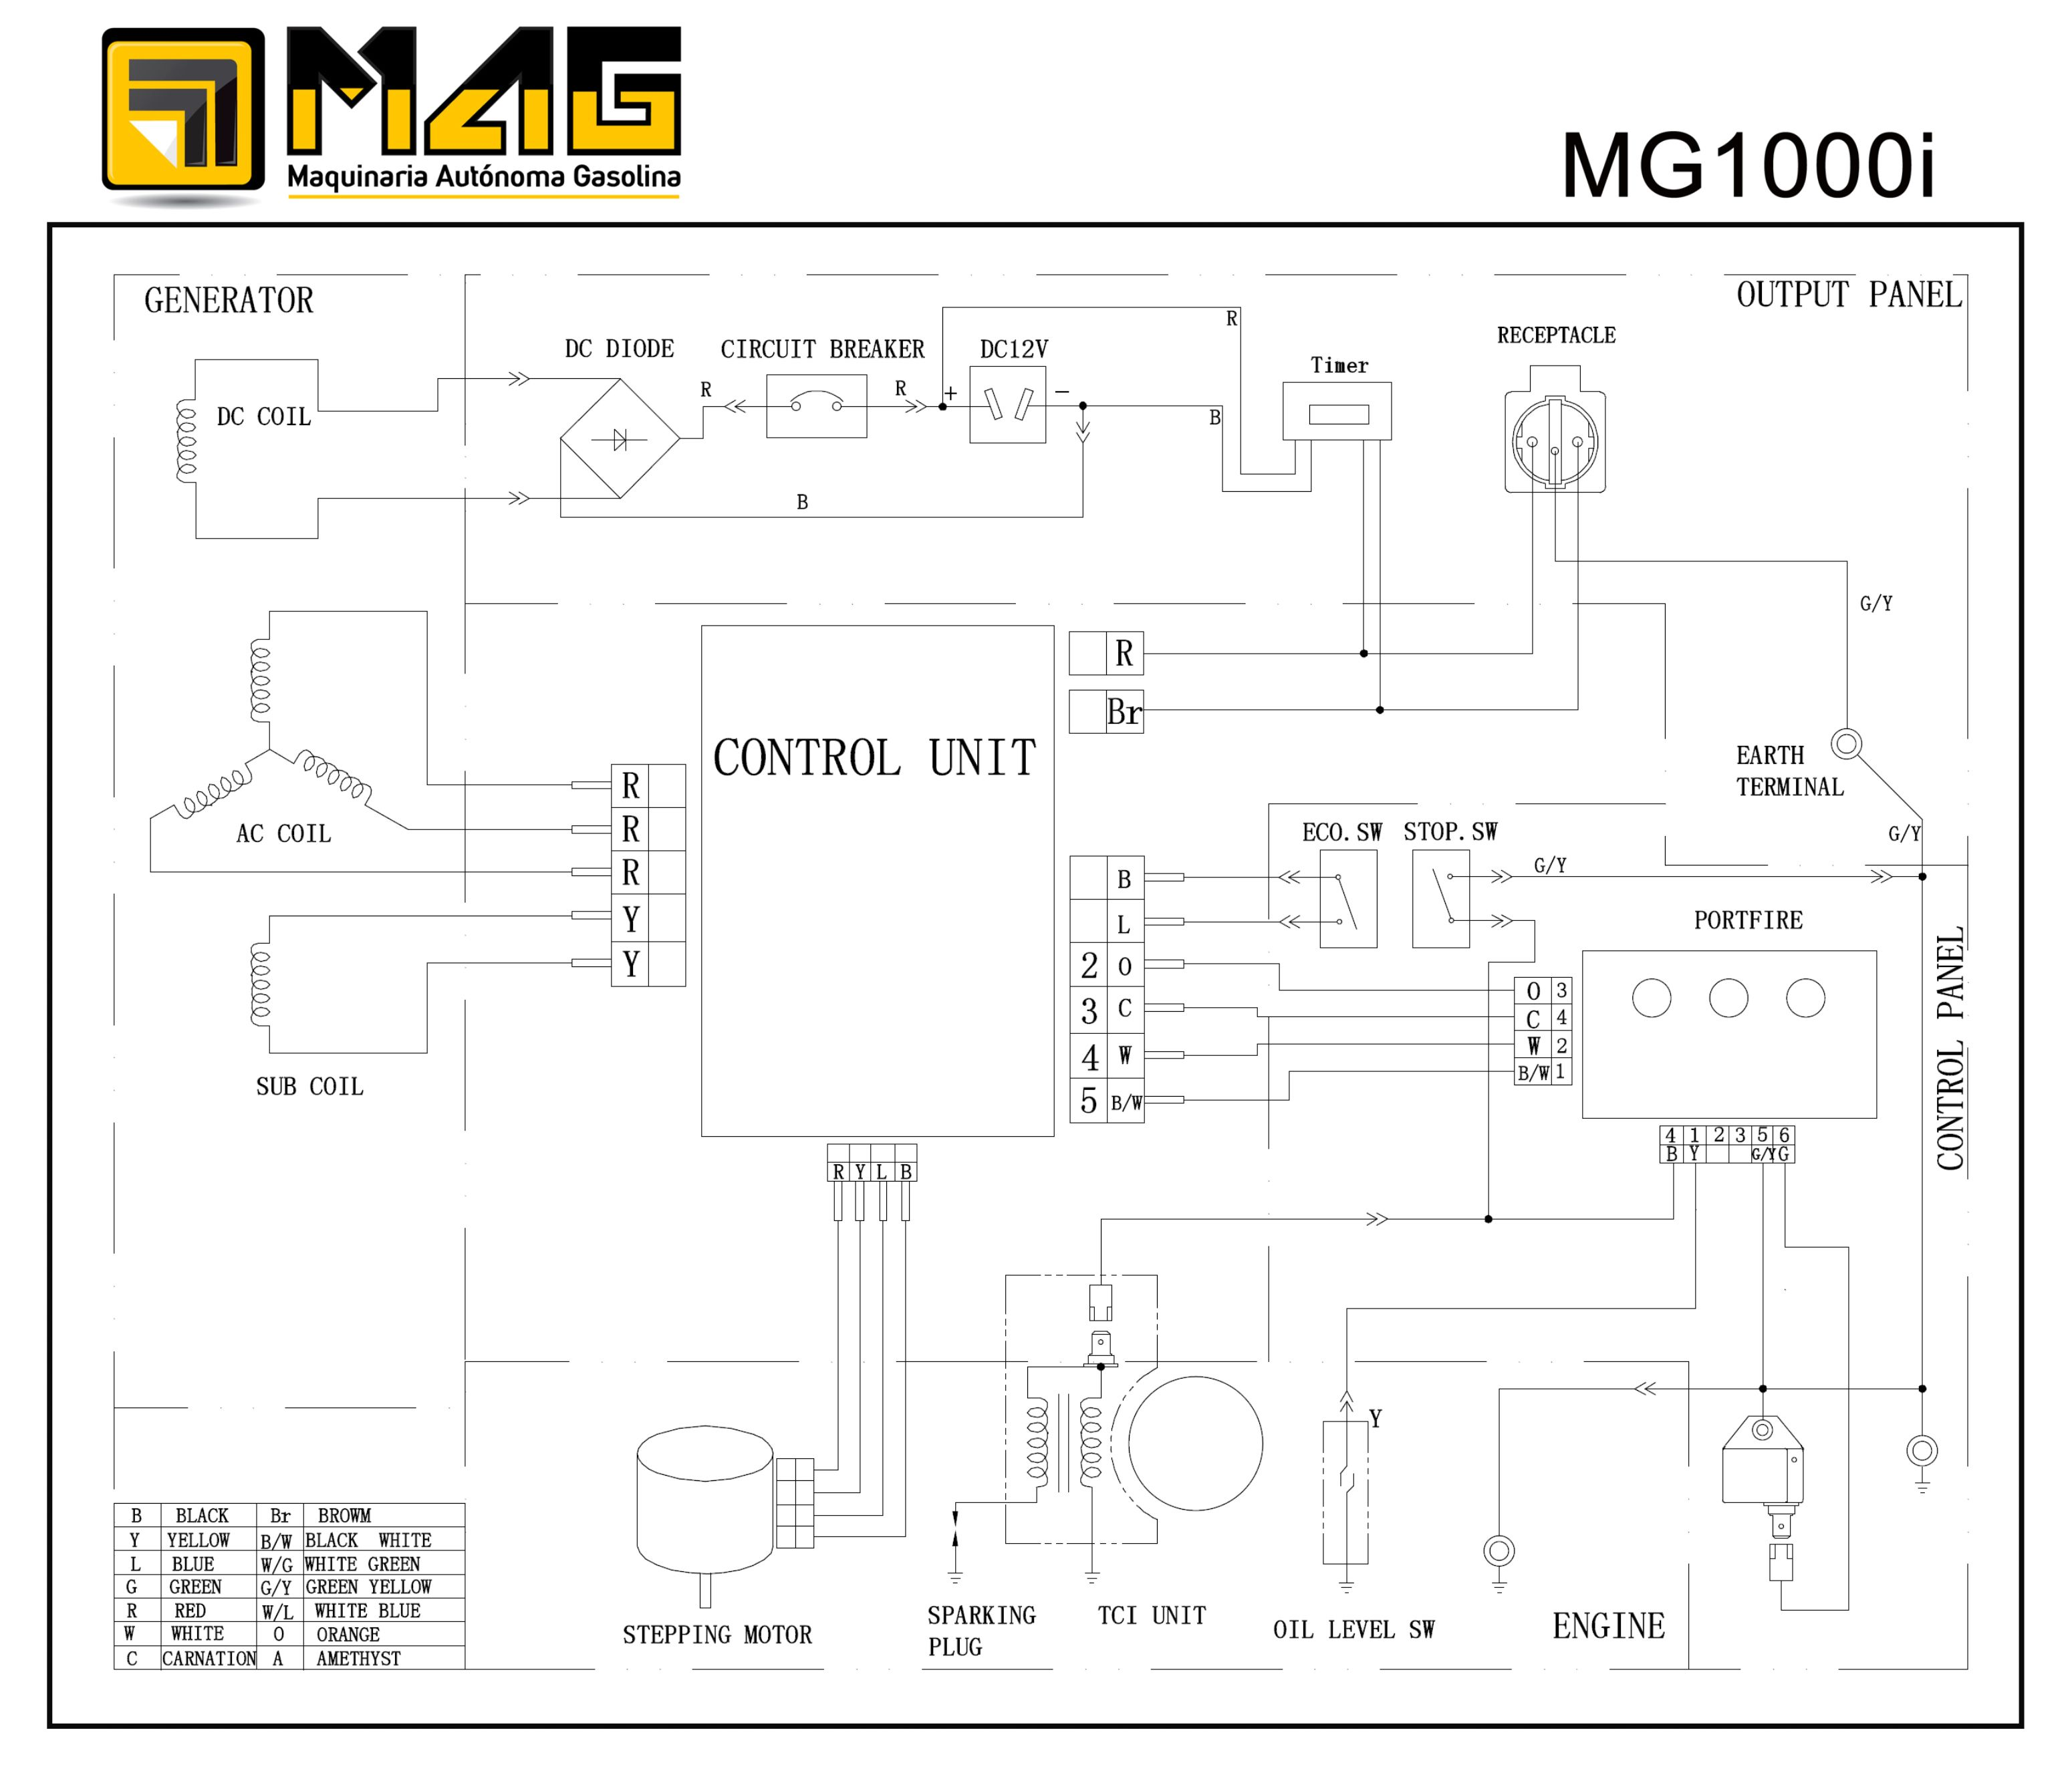 Diagram MG1000i Generator